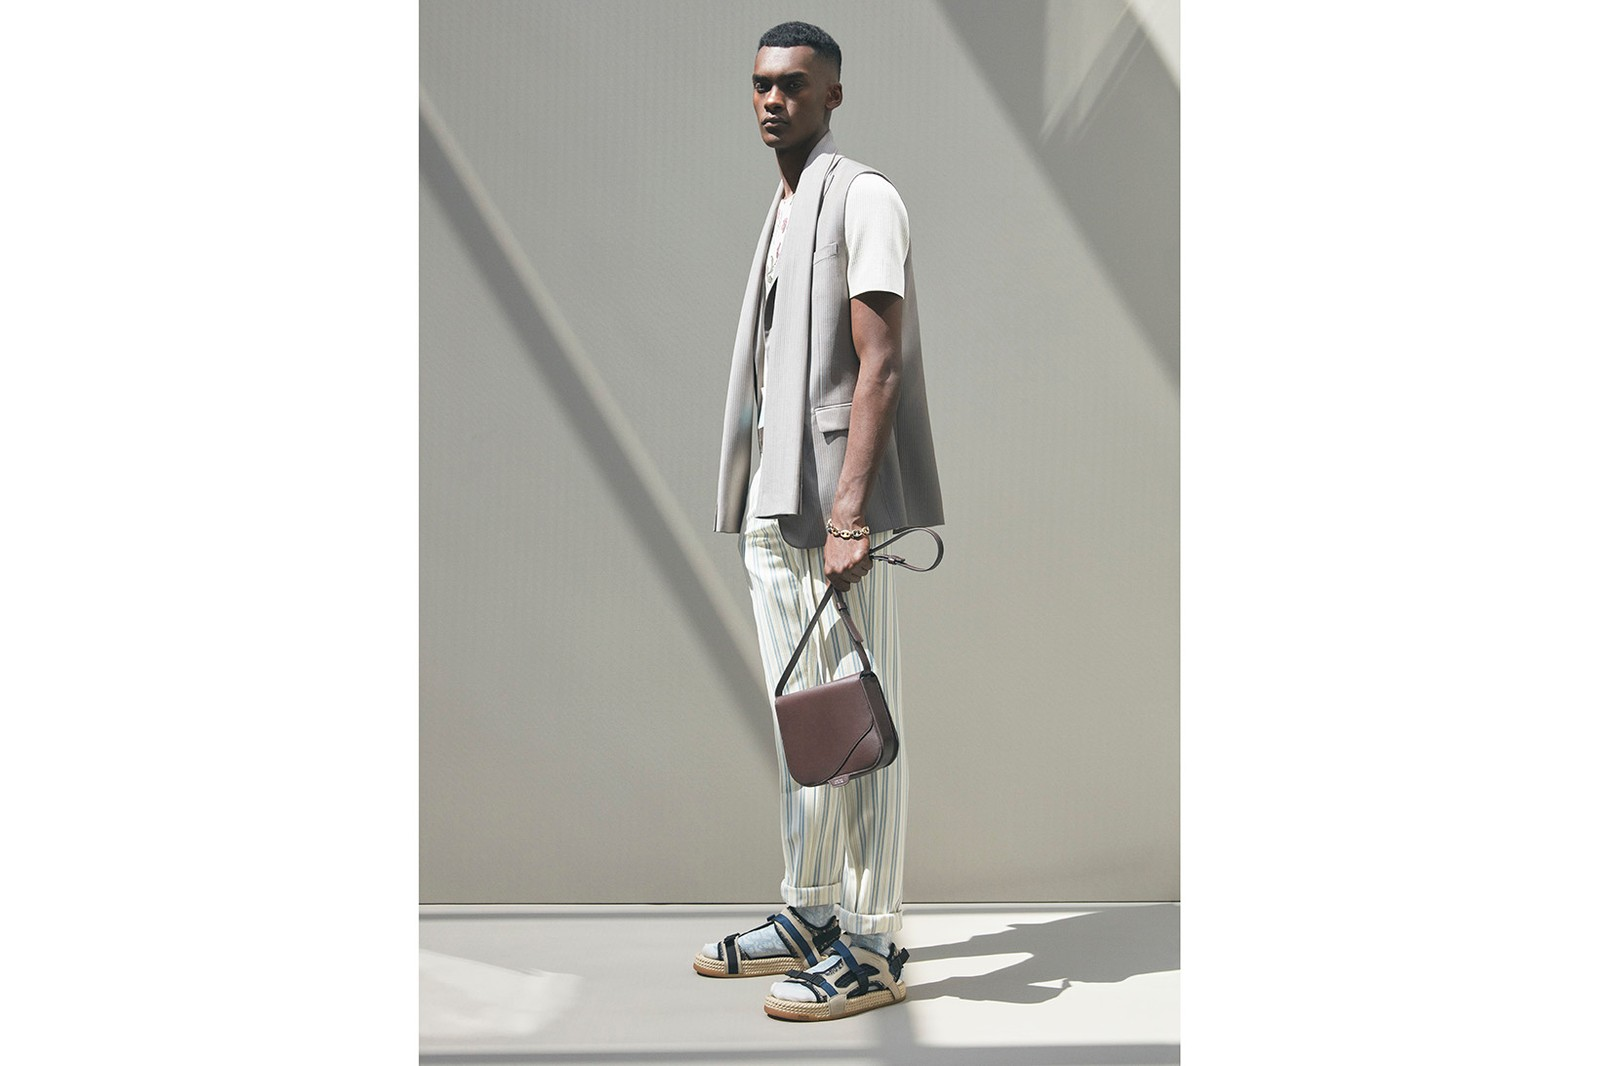 Dior Spring/Sumer 2021 Men's Collection Kim Jones Amoako Boafo Collaboration Lookbook Paris Fashion Week